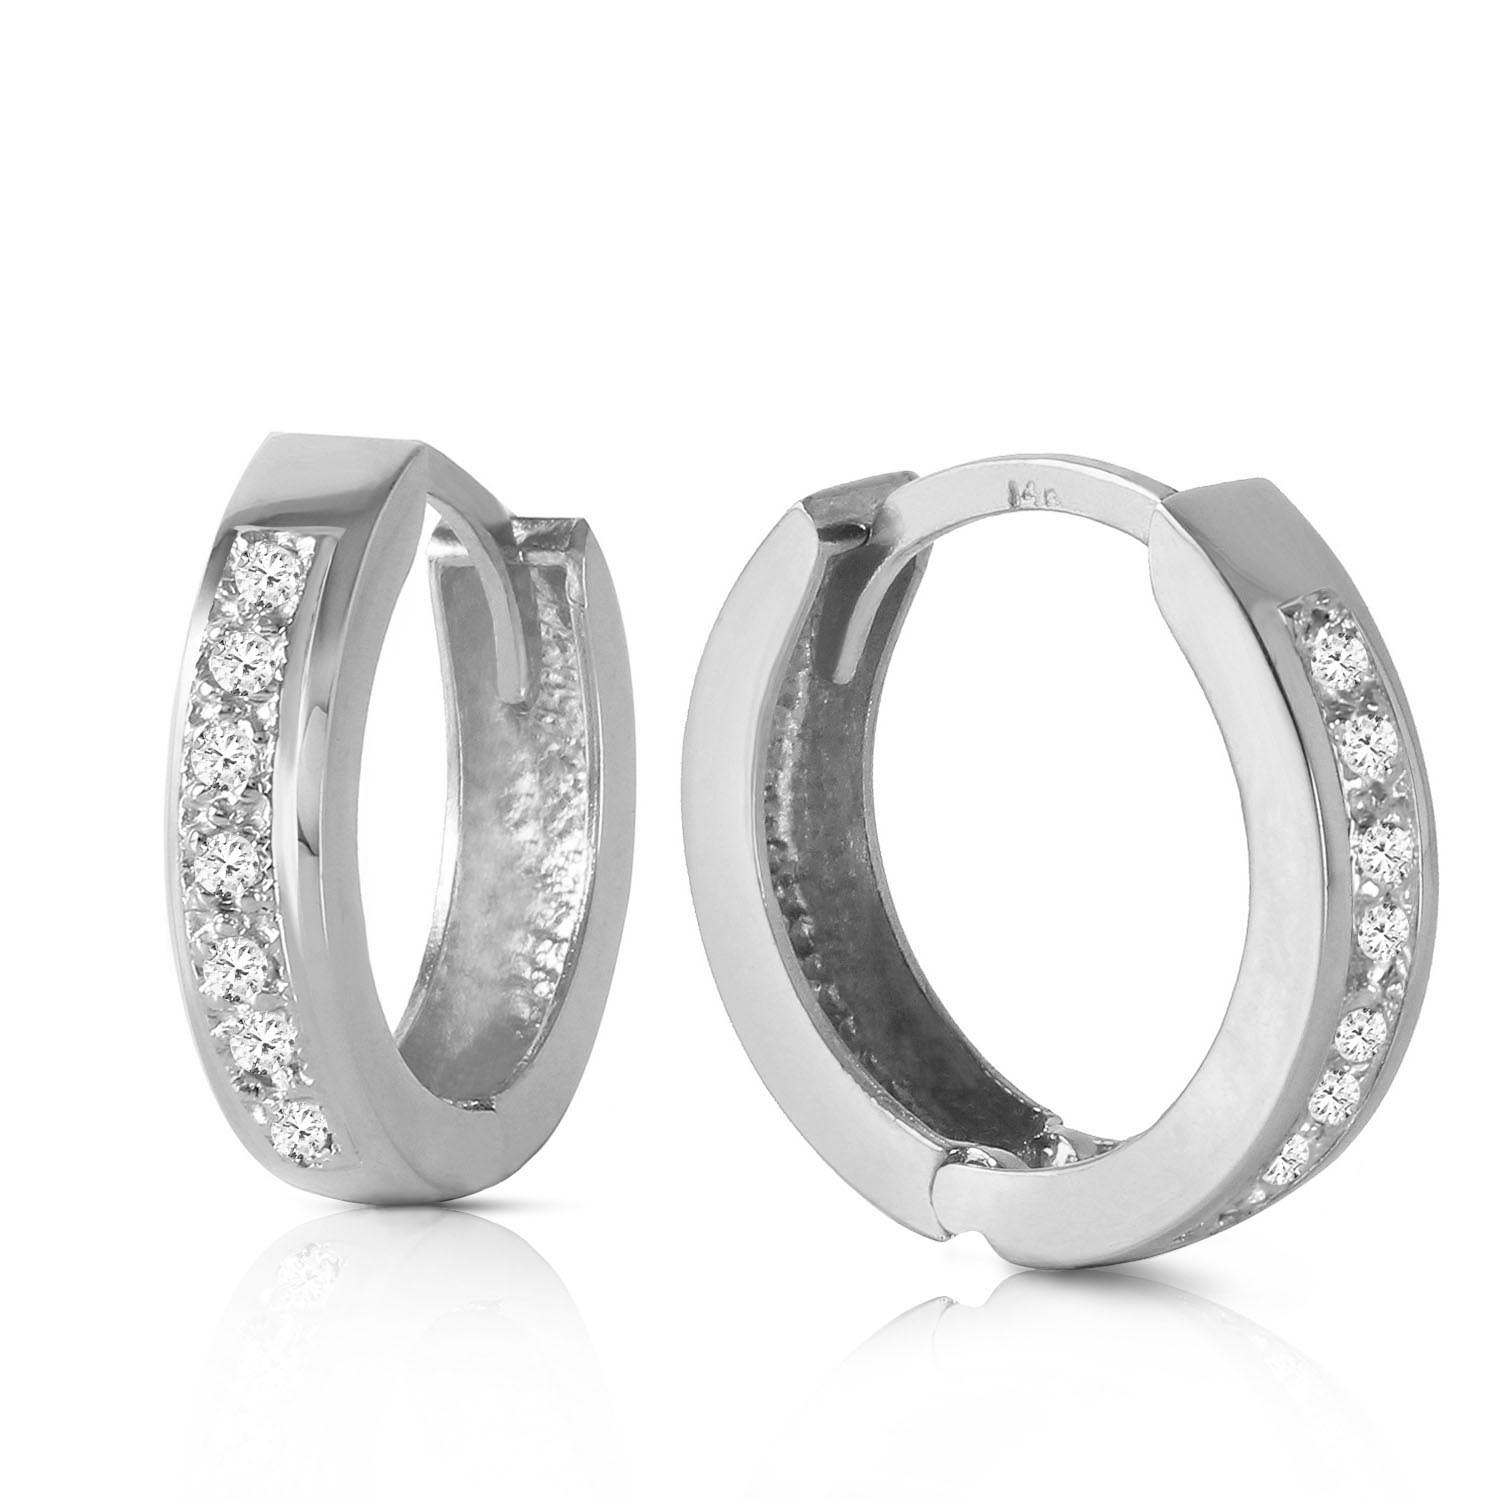 Diamond Huggie Earrings 0.07 ctw in 9ct White Gold